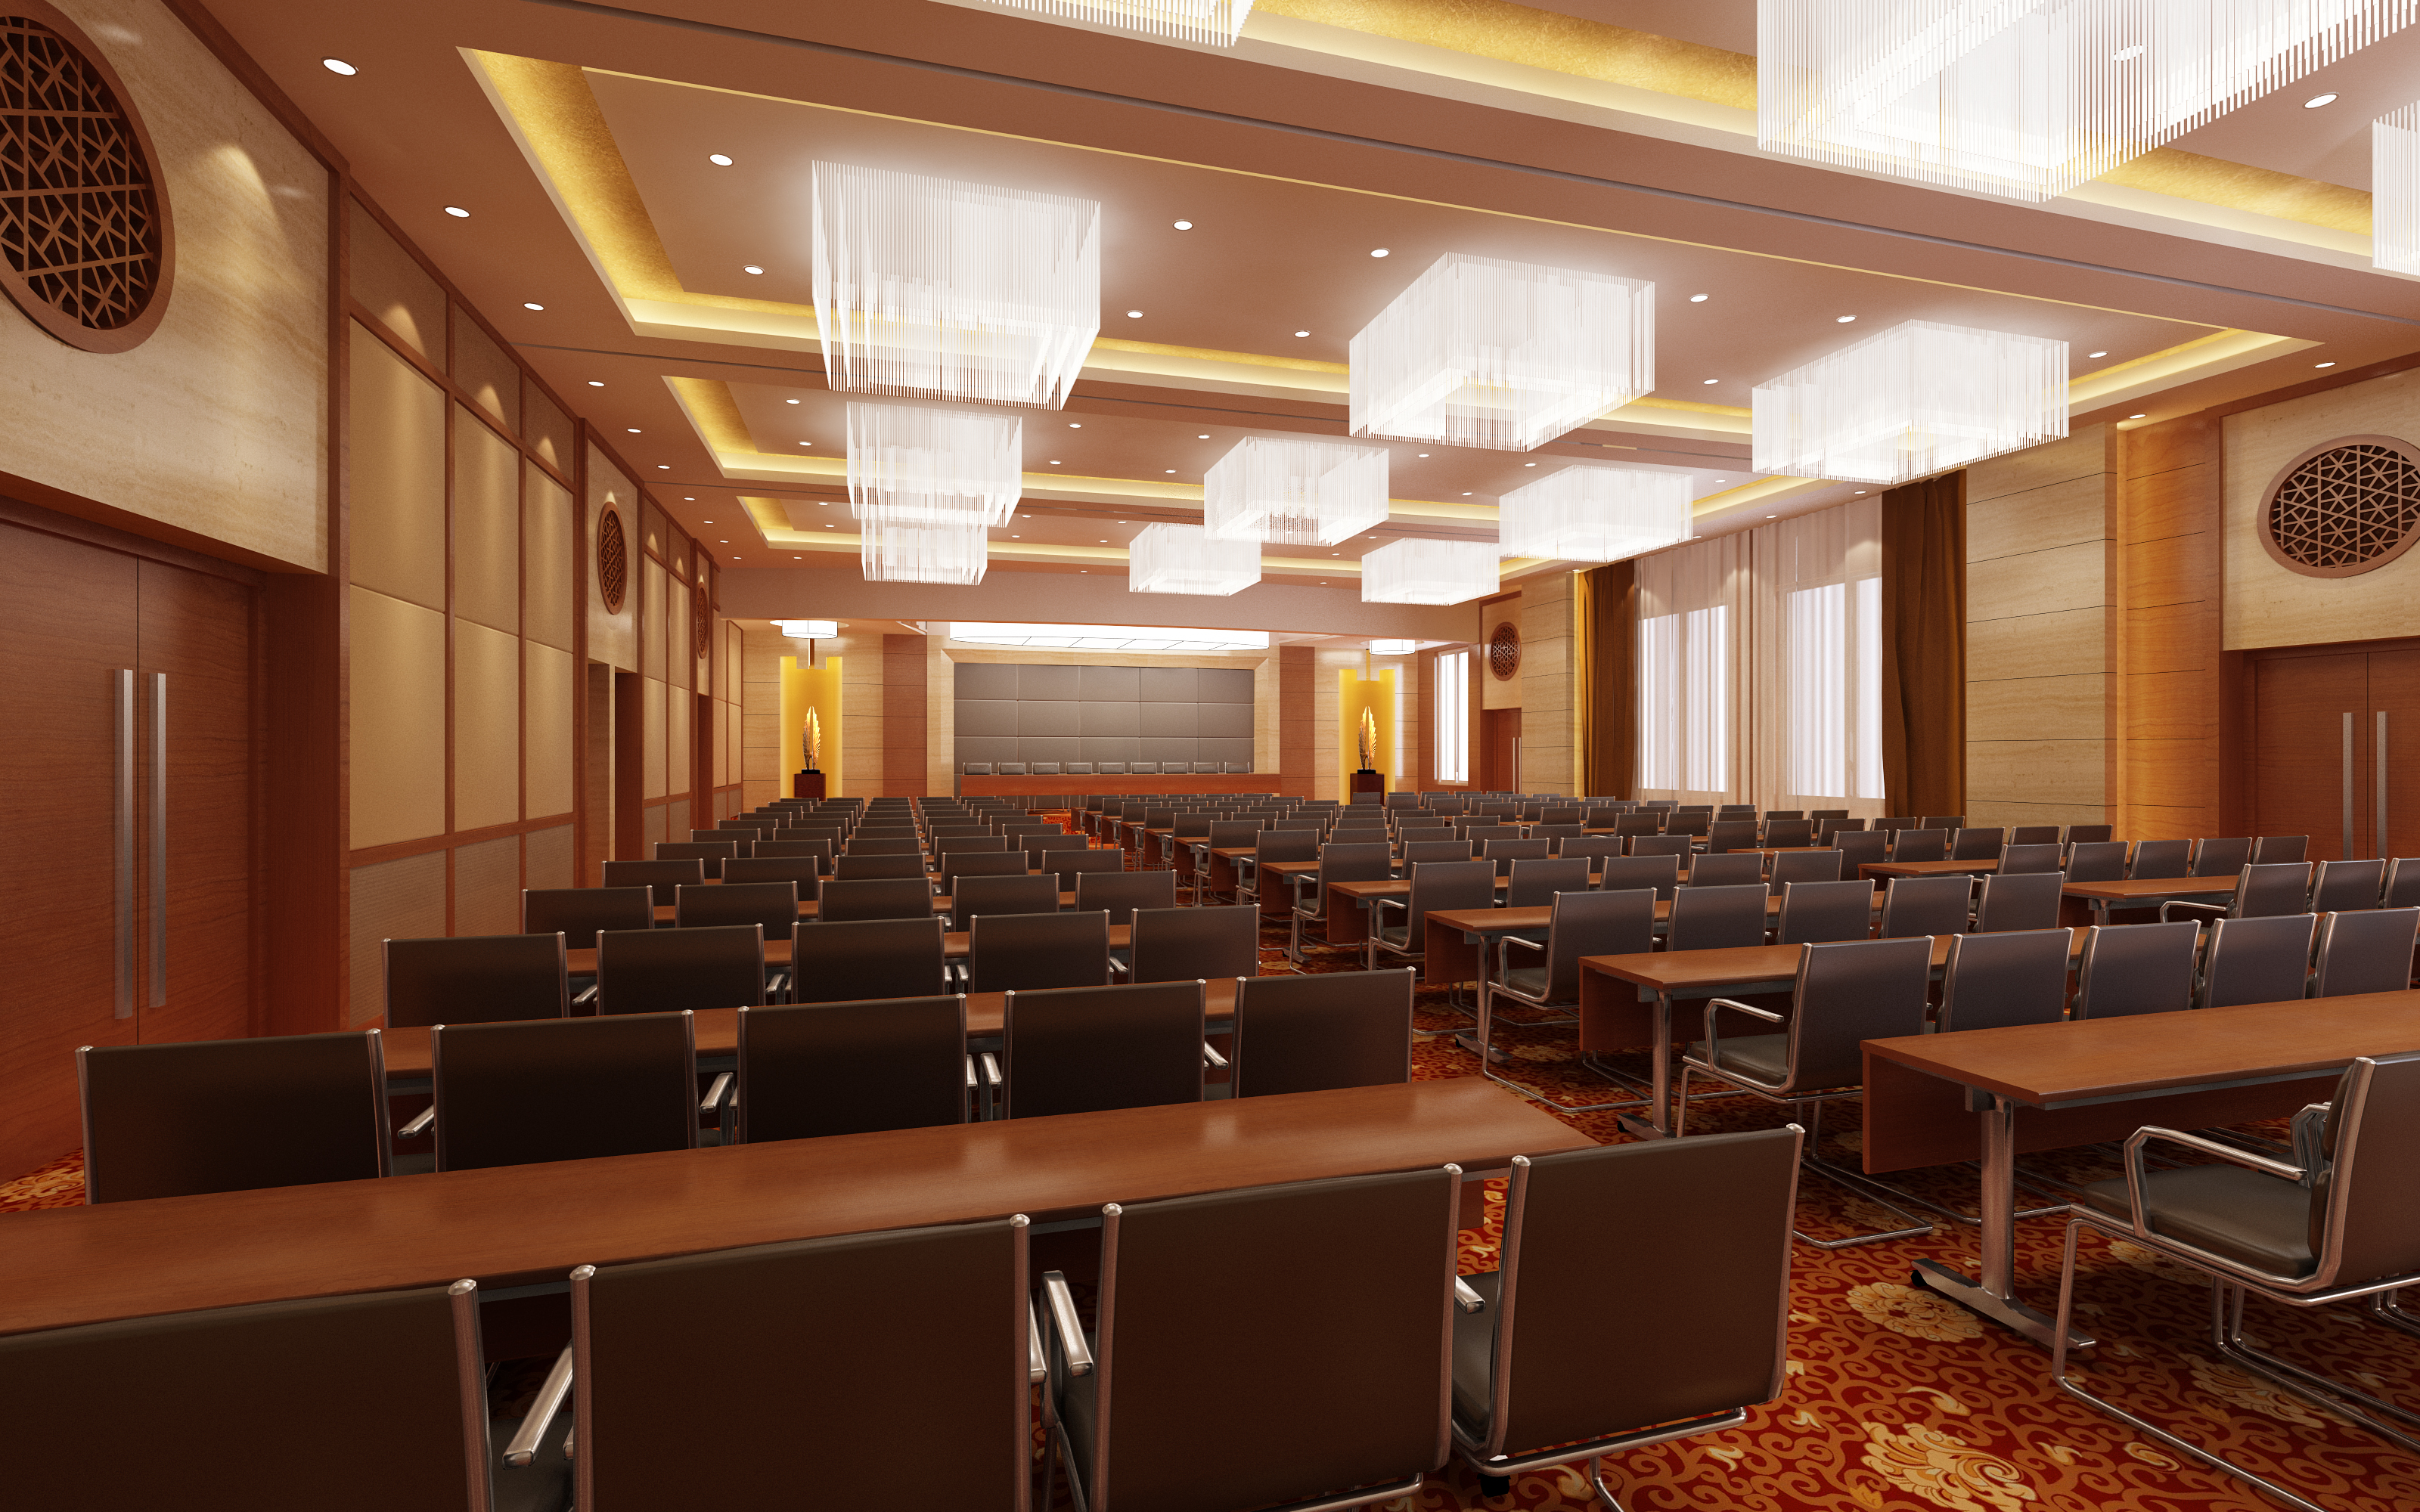 auditorium room 010-2 3d model max 125229